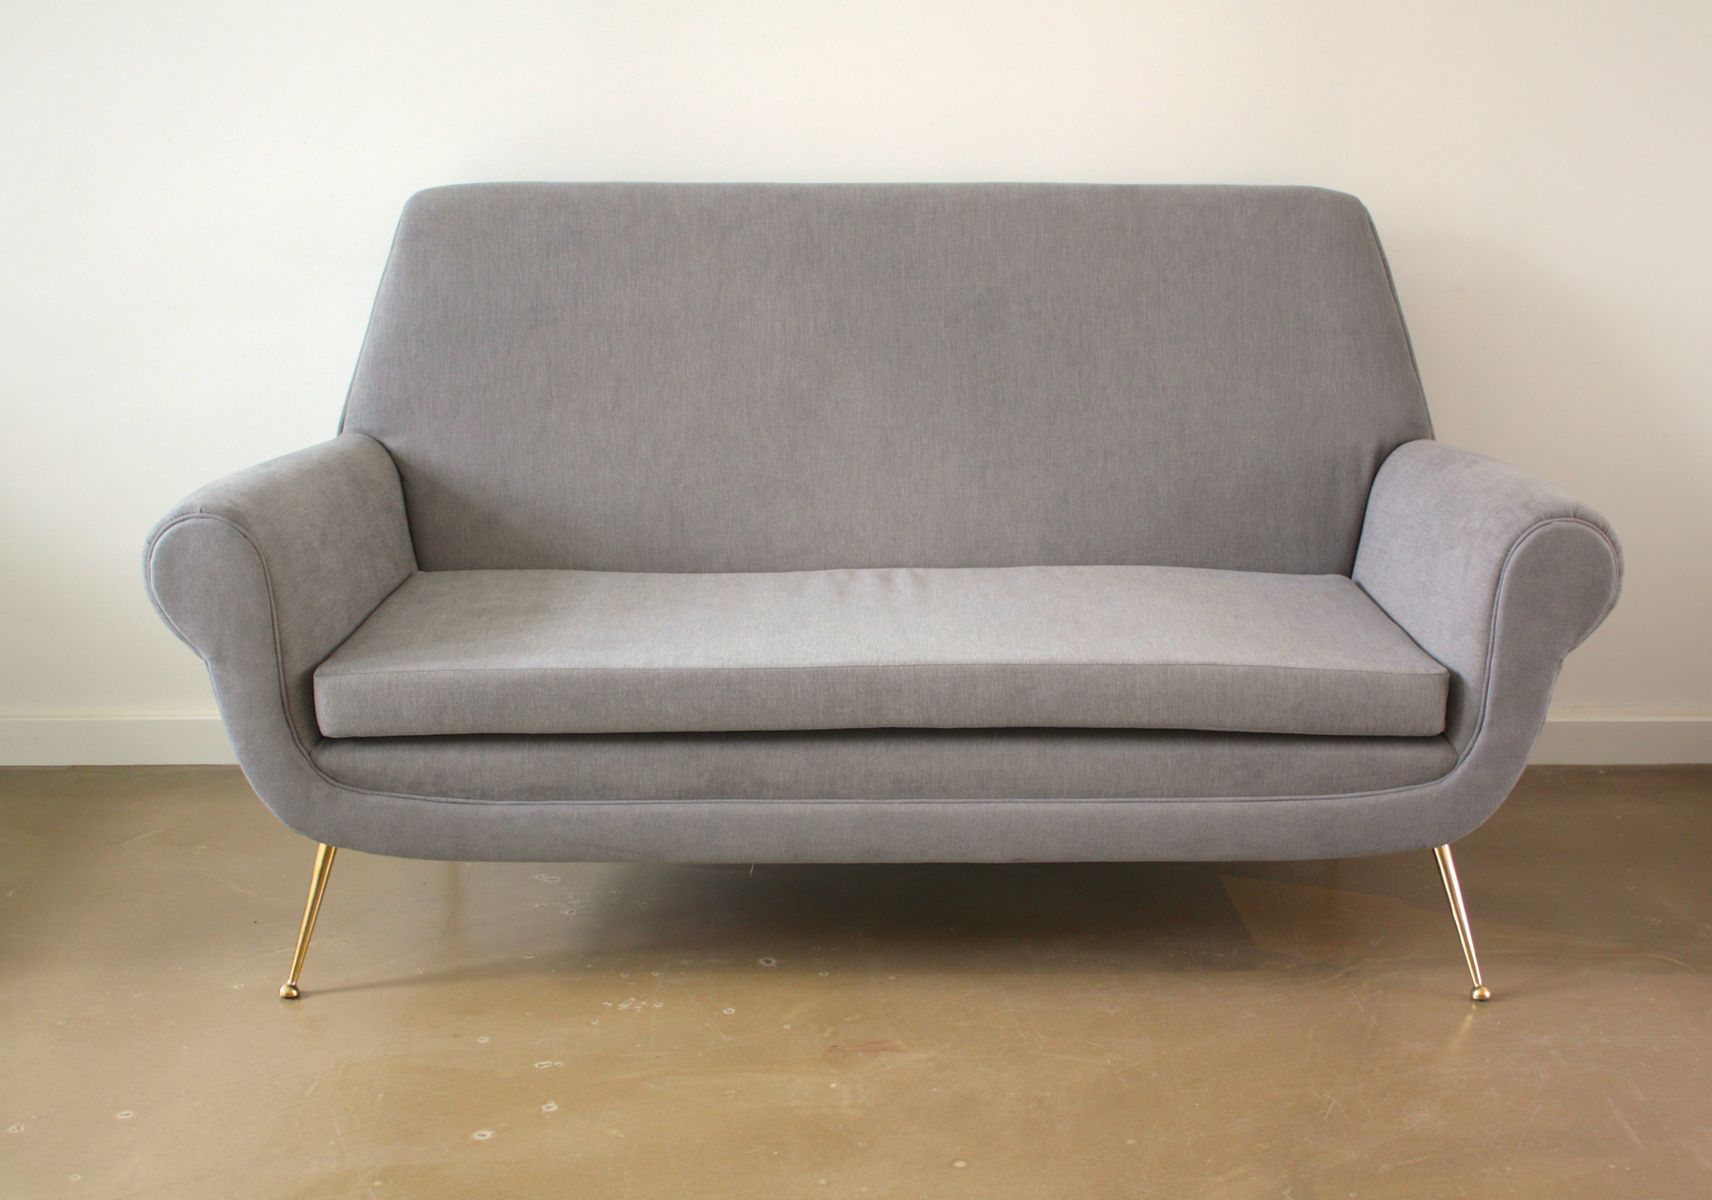 Grey sofa by gigi radice for minotti 1950s for sale at pamono for Gray sofas for sale